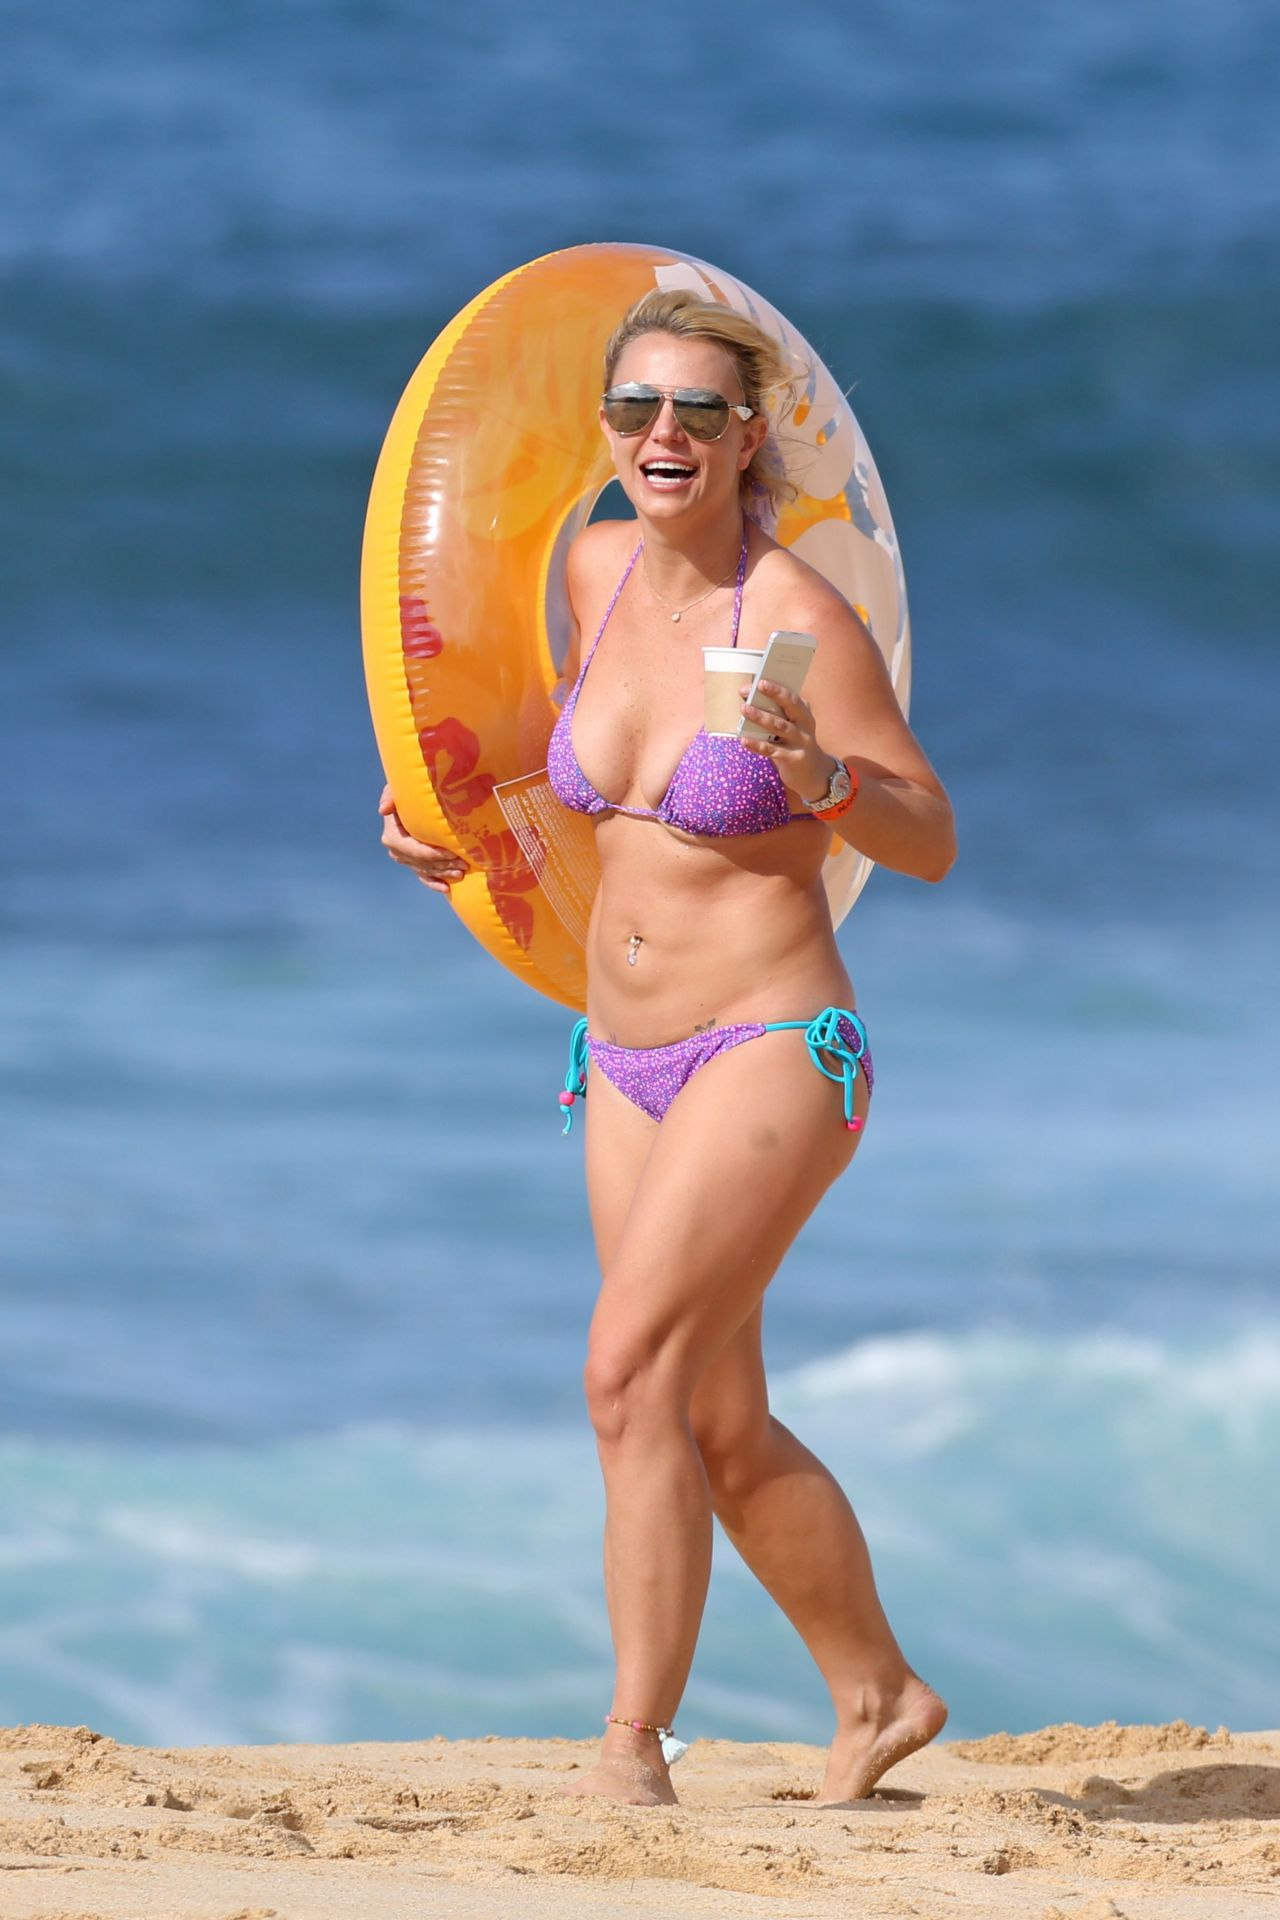 With her slim body and Light blond hairtype without bra (cup size 36B) on the beach in bikini